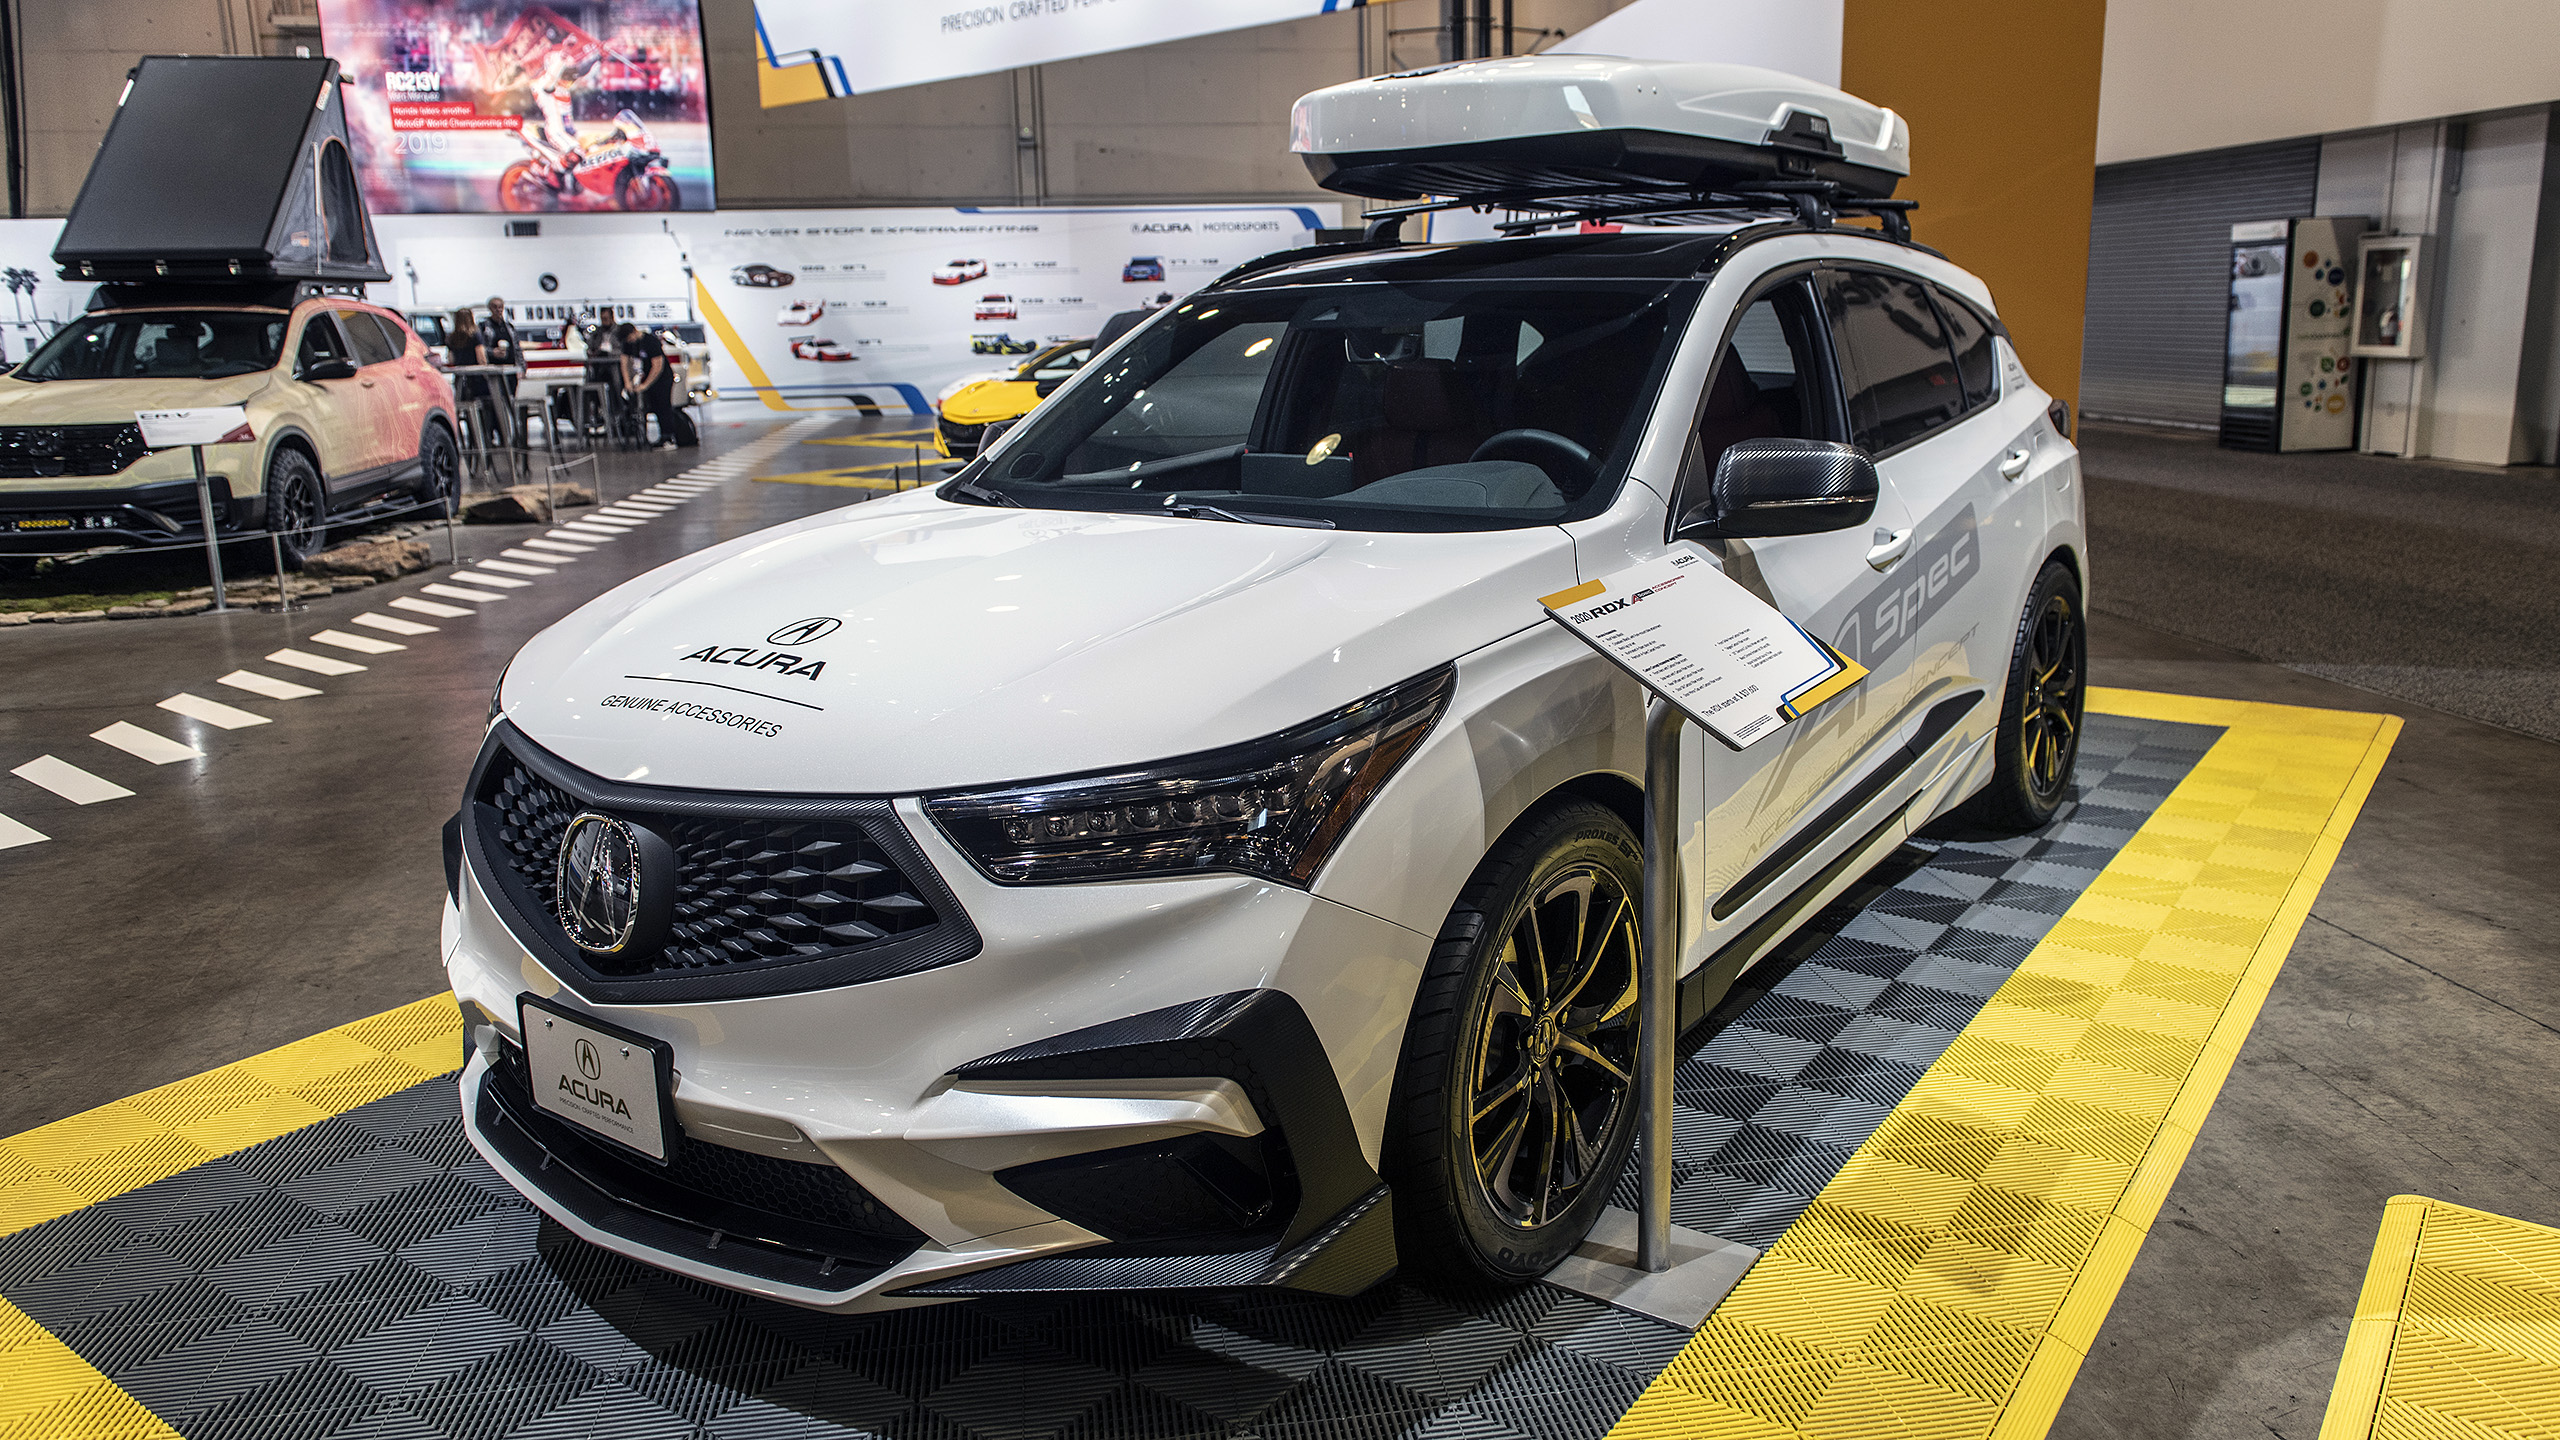 """Acura has brought quite a few interesting vehicles to the ongoing SEMA show, including a concept car called the Type S, a tuned version of the NSX supercar, and an SUV called the RDX A-Spec, which packs a range of options - """"for brightening up your day,"""" the company claims. Let's see what's in store."""